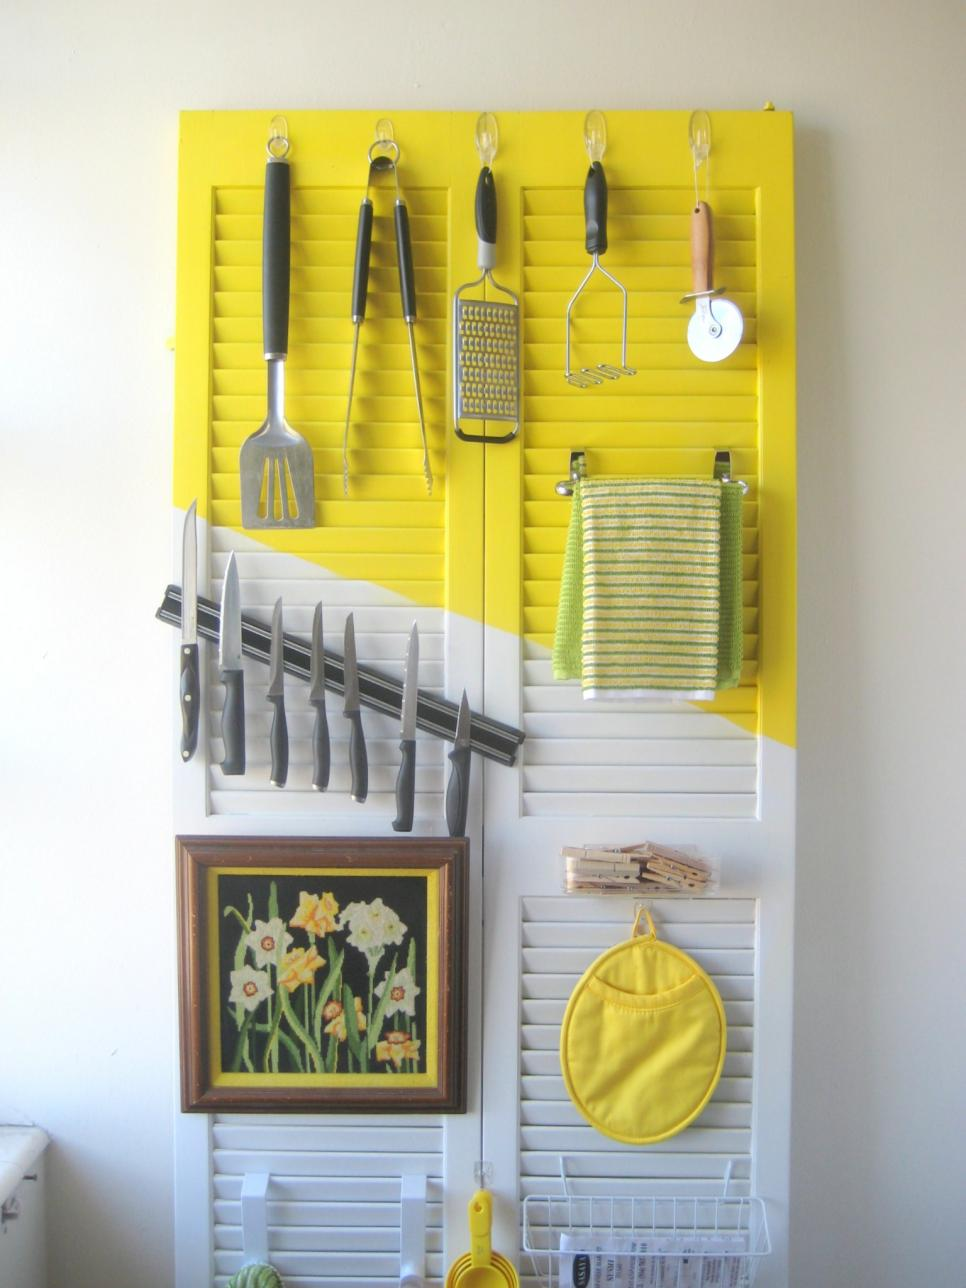 Clever storage ideas for small spaces - Clever Storage Ideas For Small Spaces 25